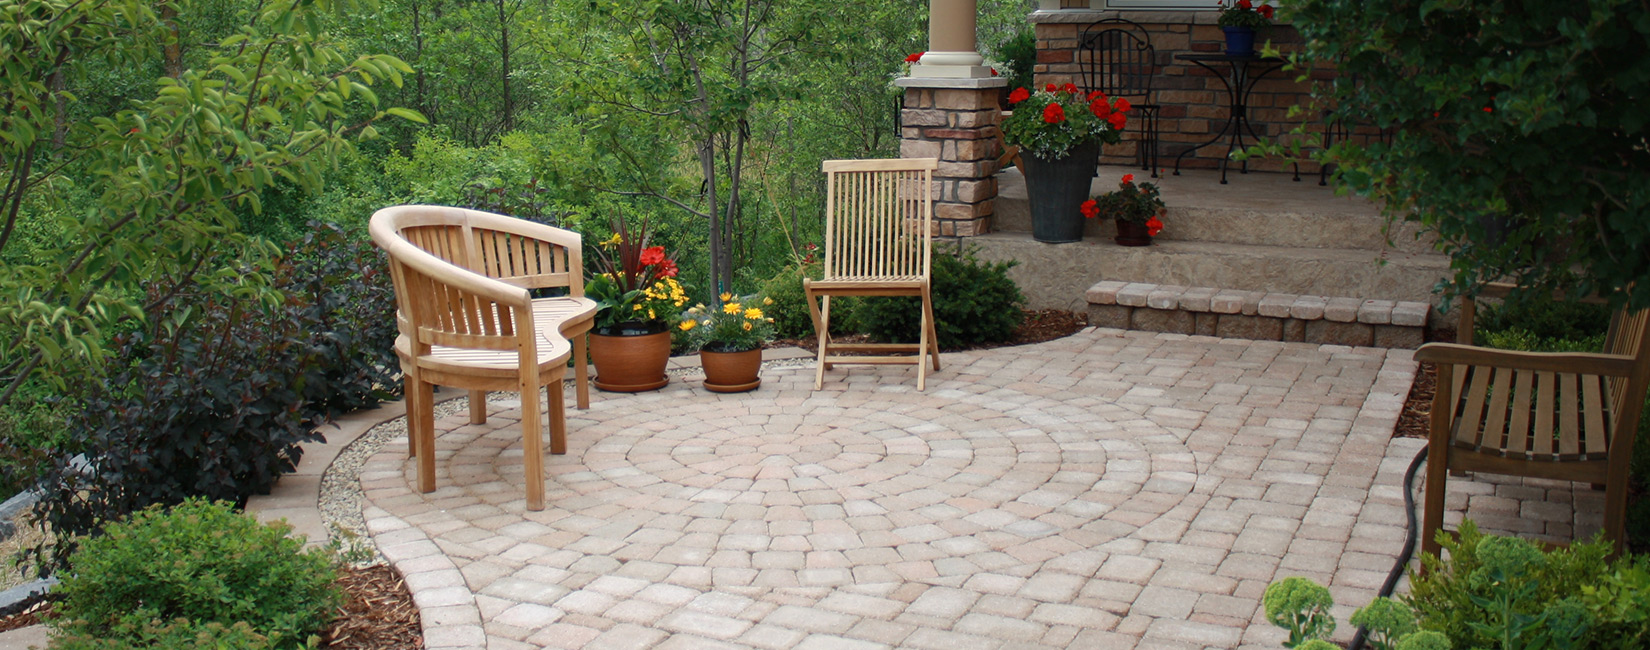 patio-design